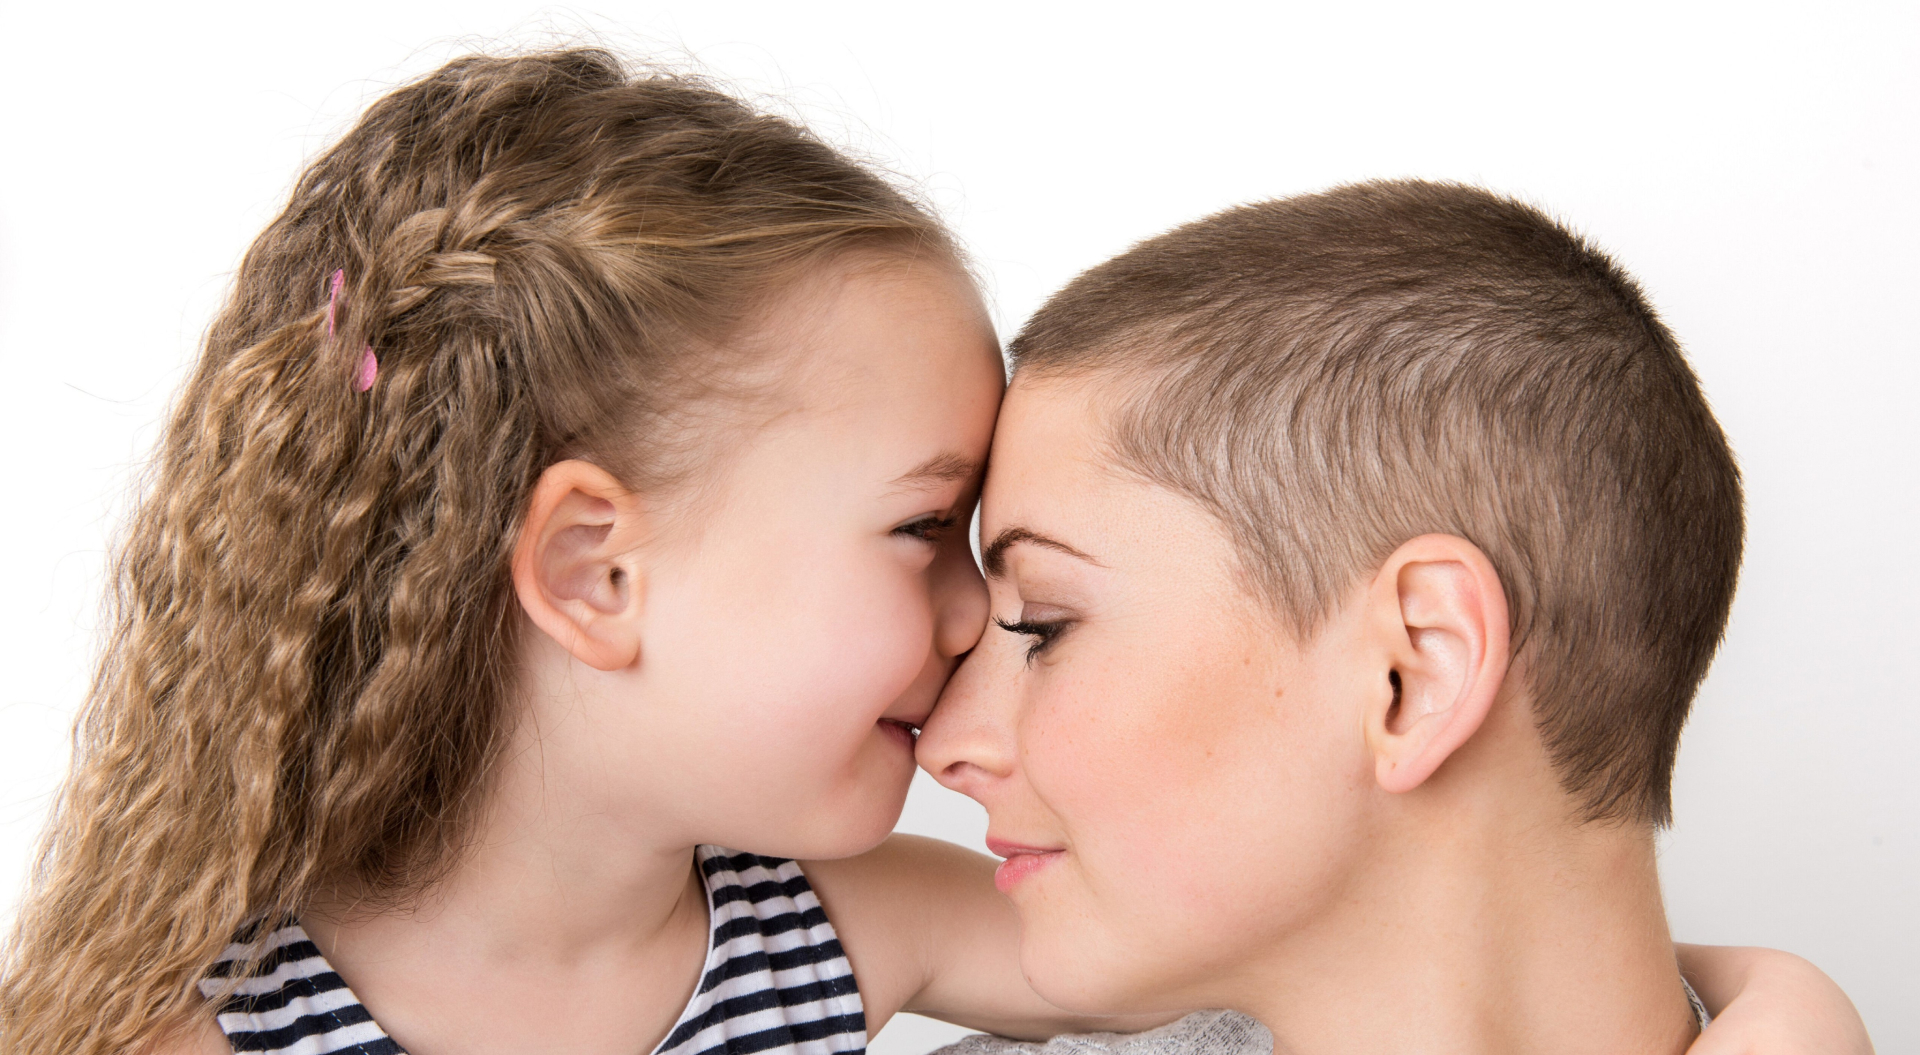 Daughter kissing mother on nose